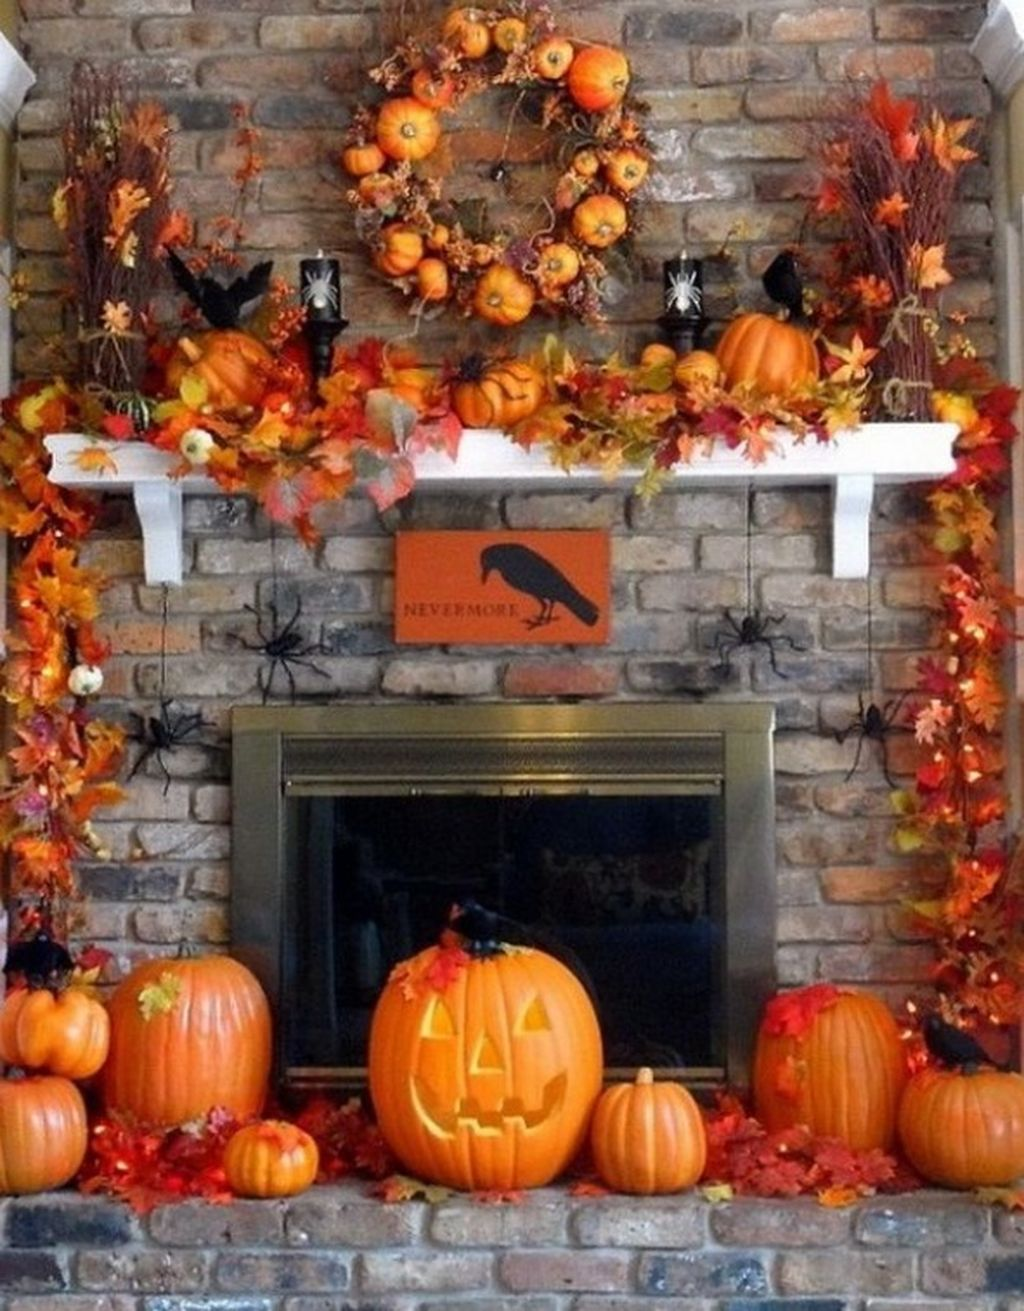 Scary But Classy Halloween Fireplace Decoration Ideas 21